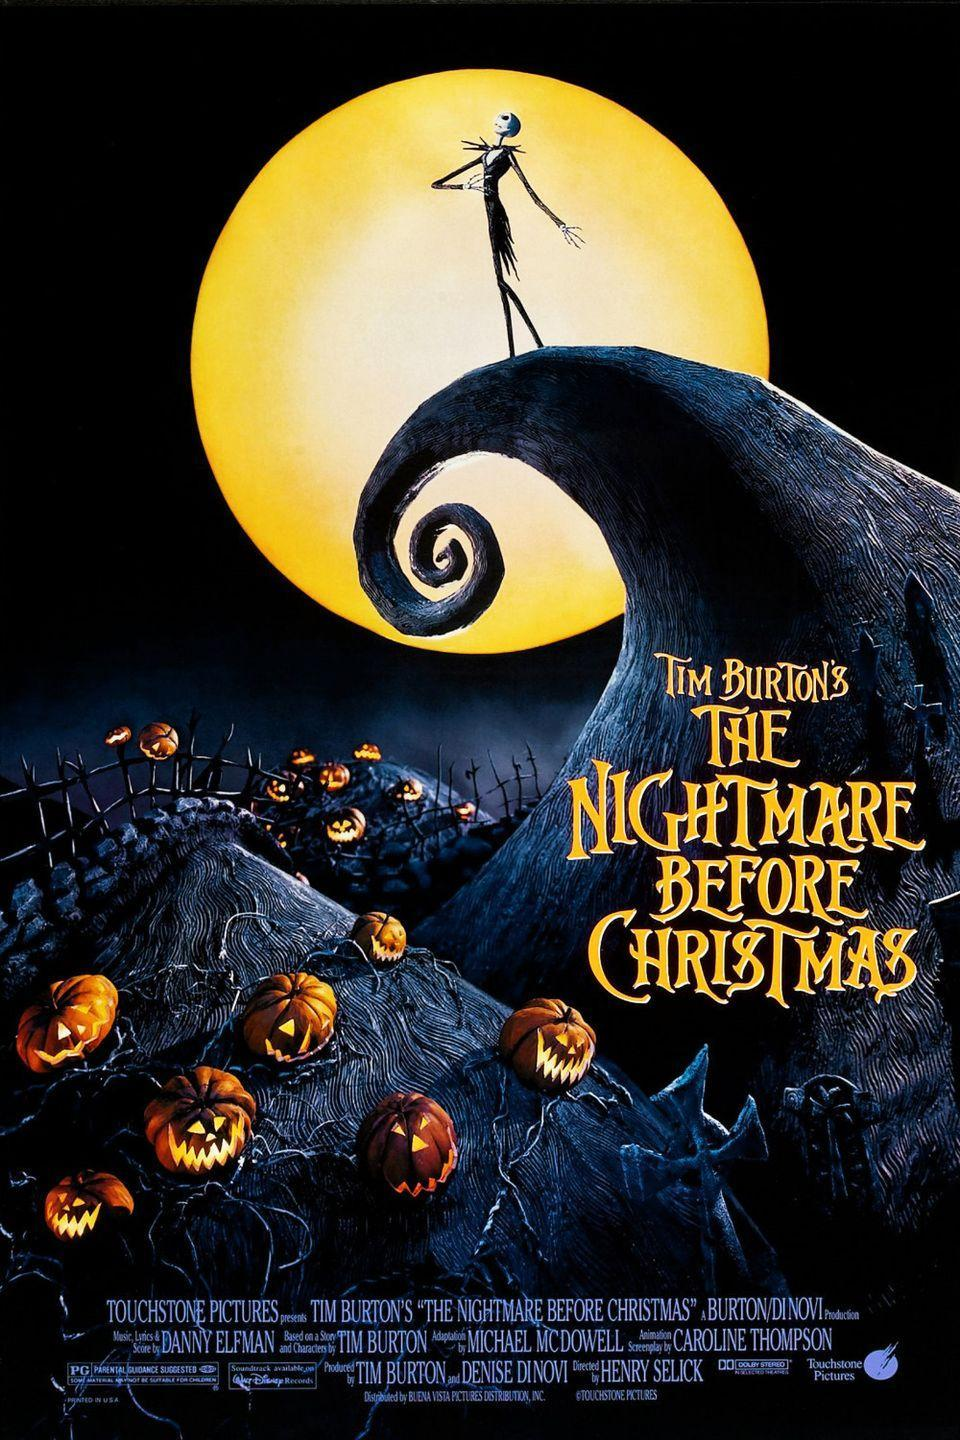 """<p>When Jack Skellington, the Pumpkin King of Halloween Town, finds himself in Christmas Town, he decides to kidnap Santa and take over the holiday, turning the joyous time of year into one filled with shrunken heads and skeletal reindeer!</p><p><a class=""""link rapid-noclick-resp"""" href=""""https://go.redirectingat.com?id=74968X1596630&url=https%3A%2F%2Fwww.disneyplus.com%2Fmovies%2Ftim-burtons-the-nightmare-before-christmas%2F5GjwOj5Rkpz2&sref=https%3A%2F%2Fwww.seventeen.com%2Fcelebrity%2Fmovies-tv%2Fg29354714%2Fnon-scary-halloween-movies%2F"""" rel=""""nofollow noopener"""" target=""""_blank"""" data-ylk=""""slk:Watch Now"""">Watch Now</a></p>"""